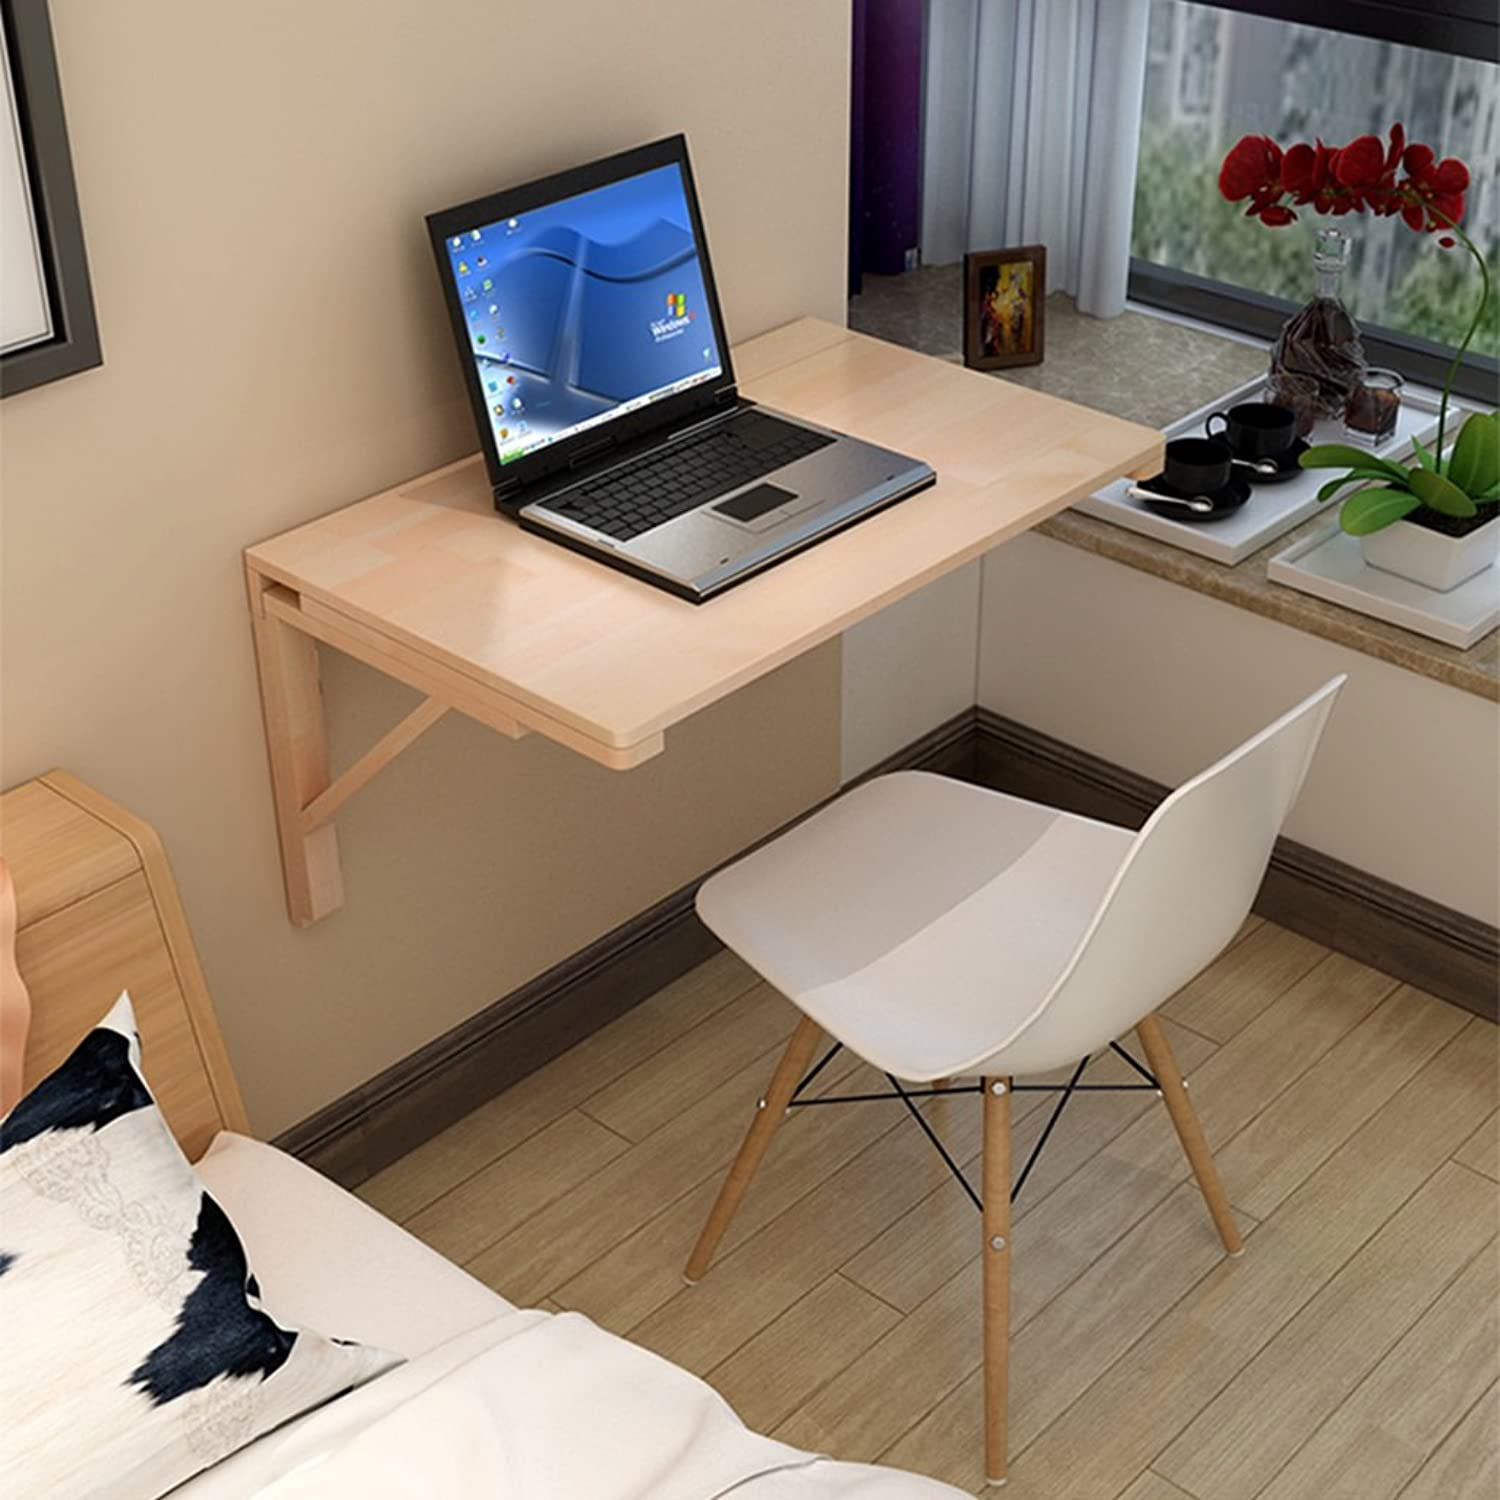 Djyyh Solid Wood Wall Table Foldable Dining Table Drop Leaf Against The Wall Computer Desk Learning Table (Size   60  40 cm)